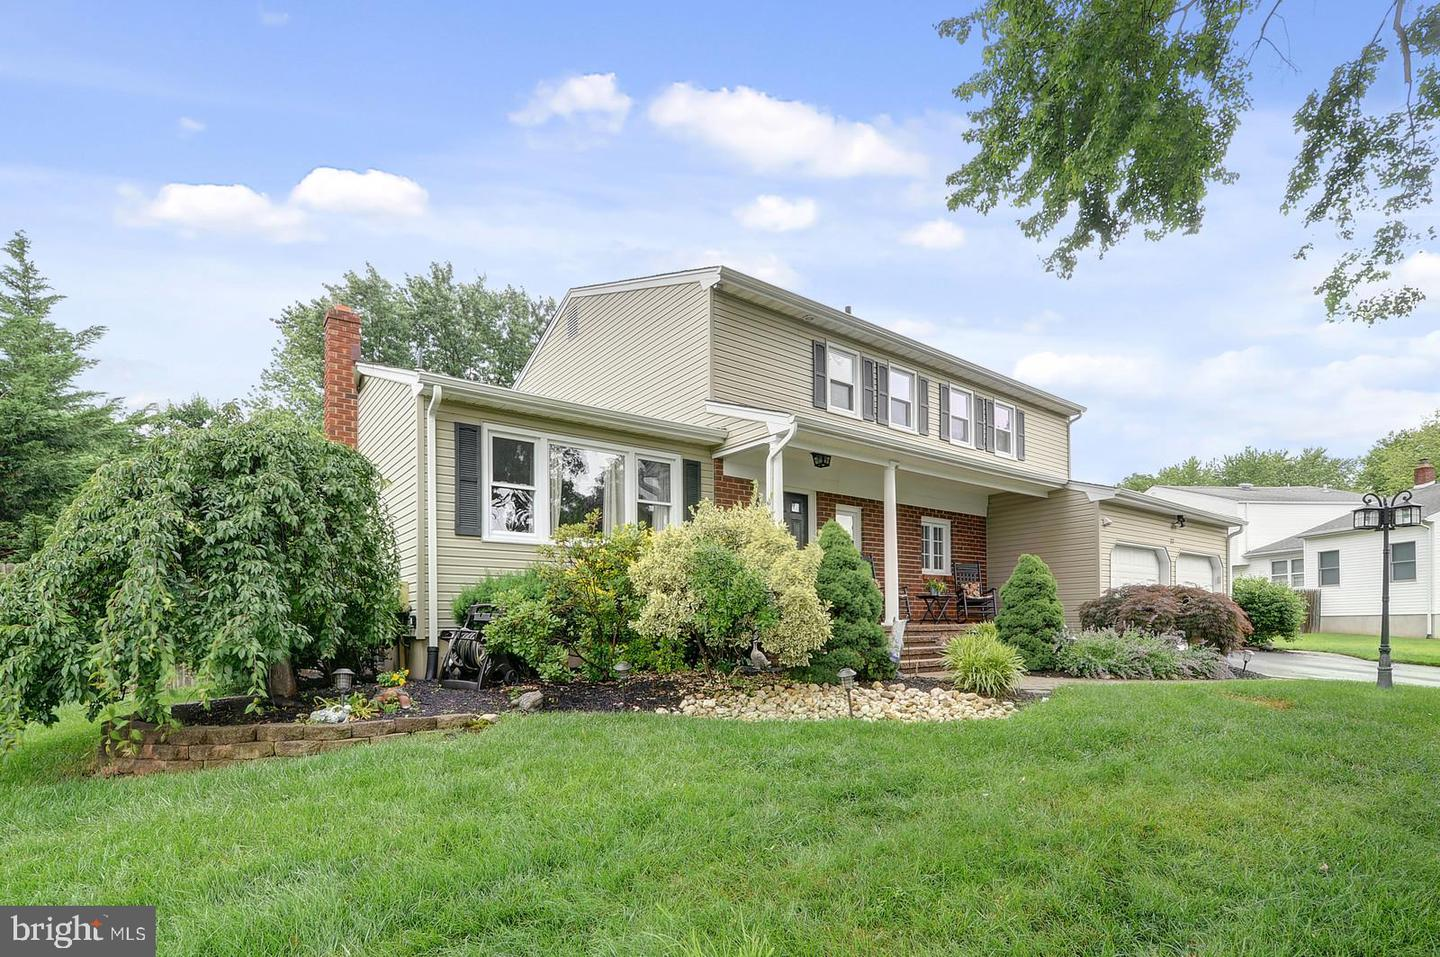 22 BLUE DEVIL LN, HAMILTON, NJ 08619